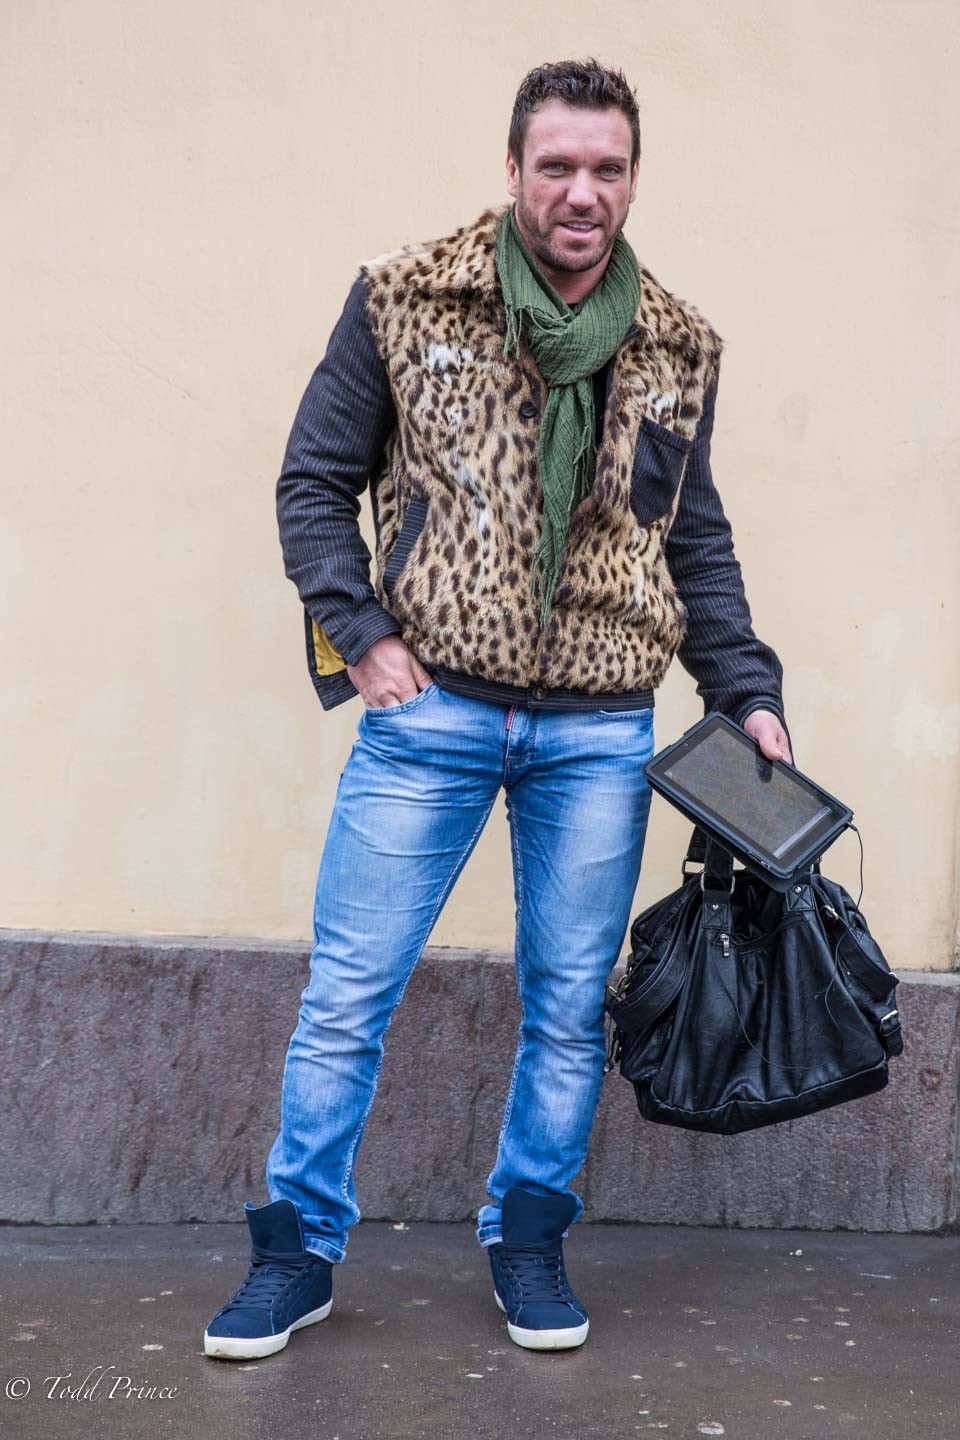 Evgeny: Dancer & Fur Clothing Owner